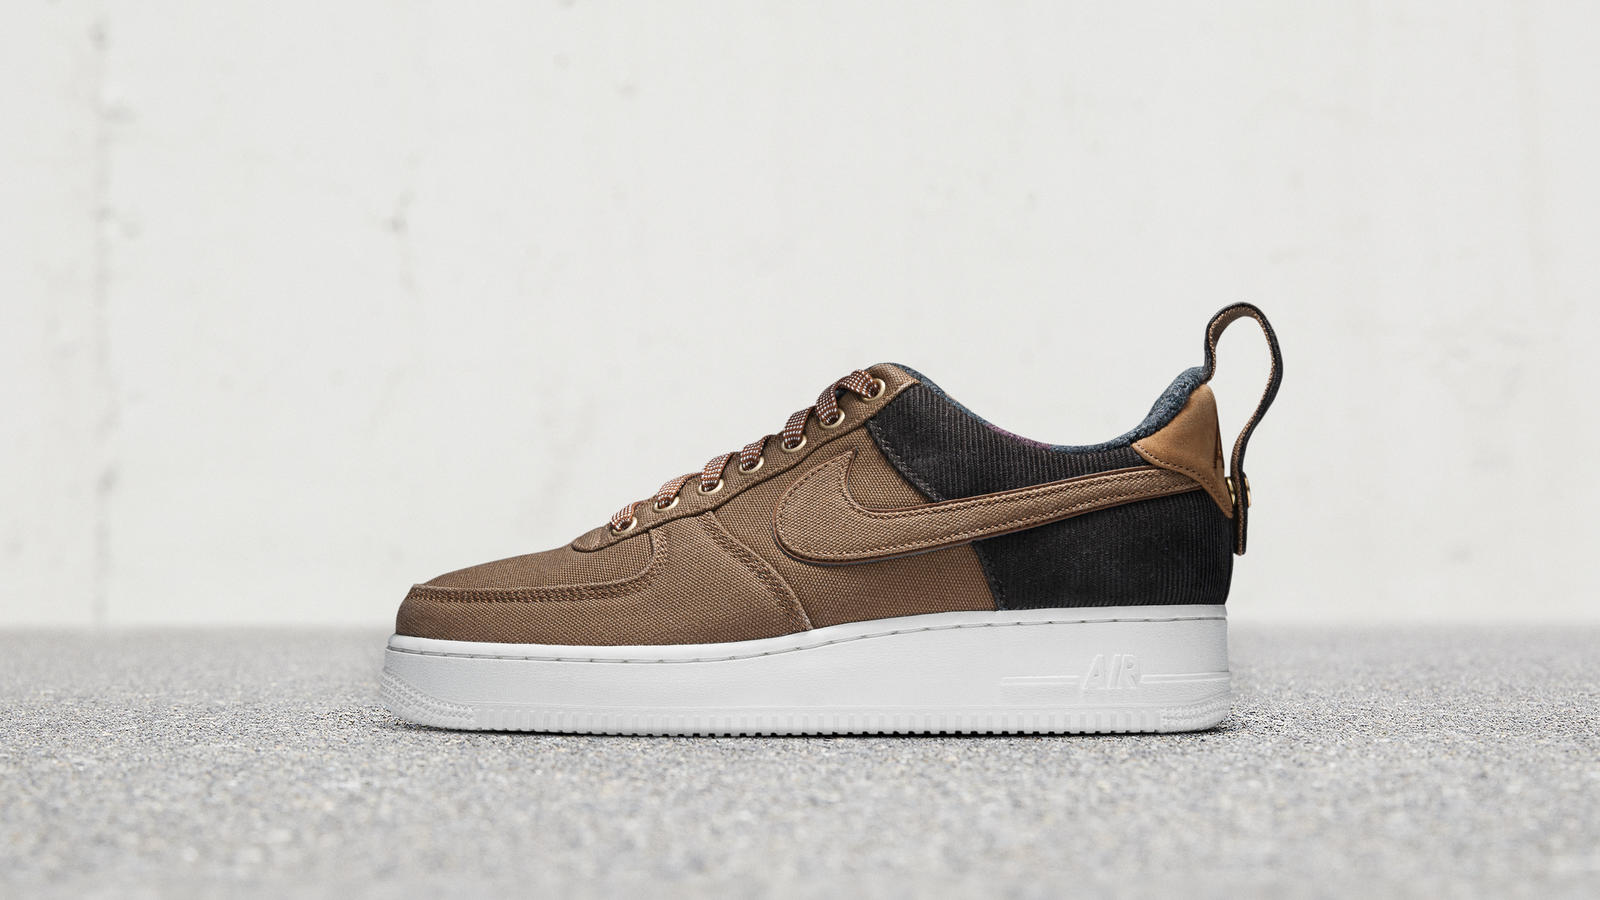 20b64cbf34 Nike x Carhartt Air Force 1 Low, Vandal Supreme High, Air Force 1 ...